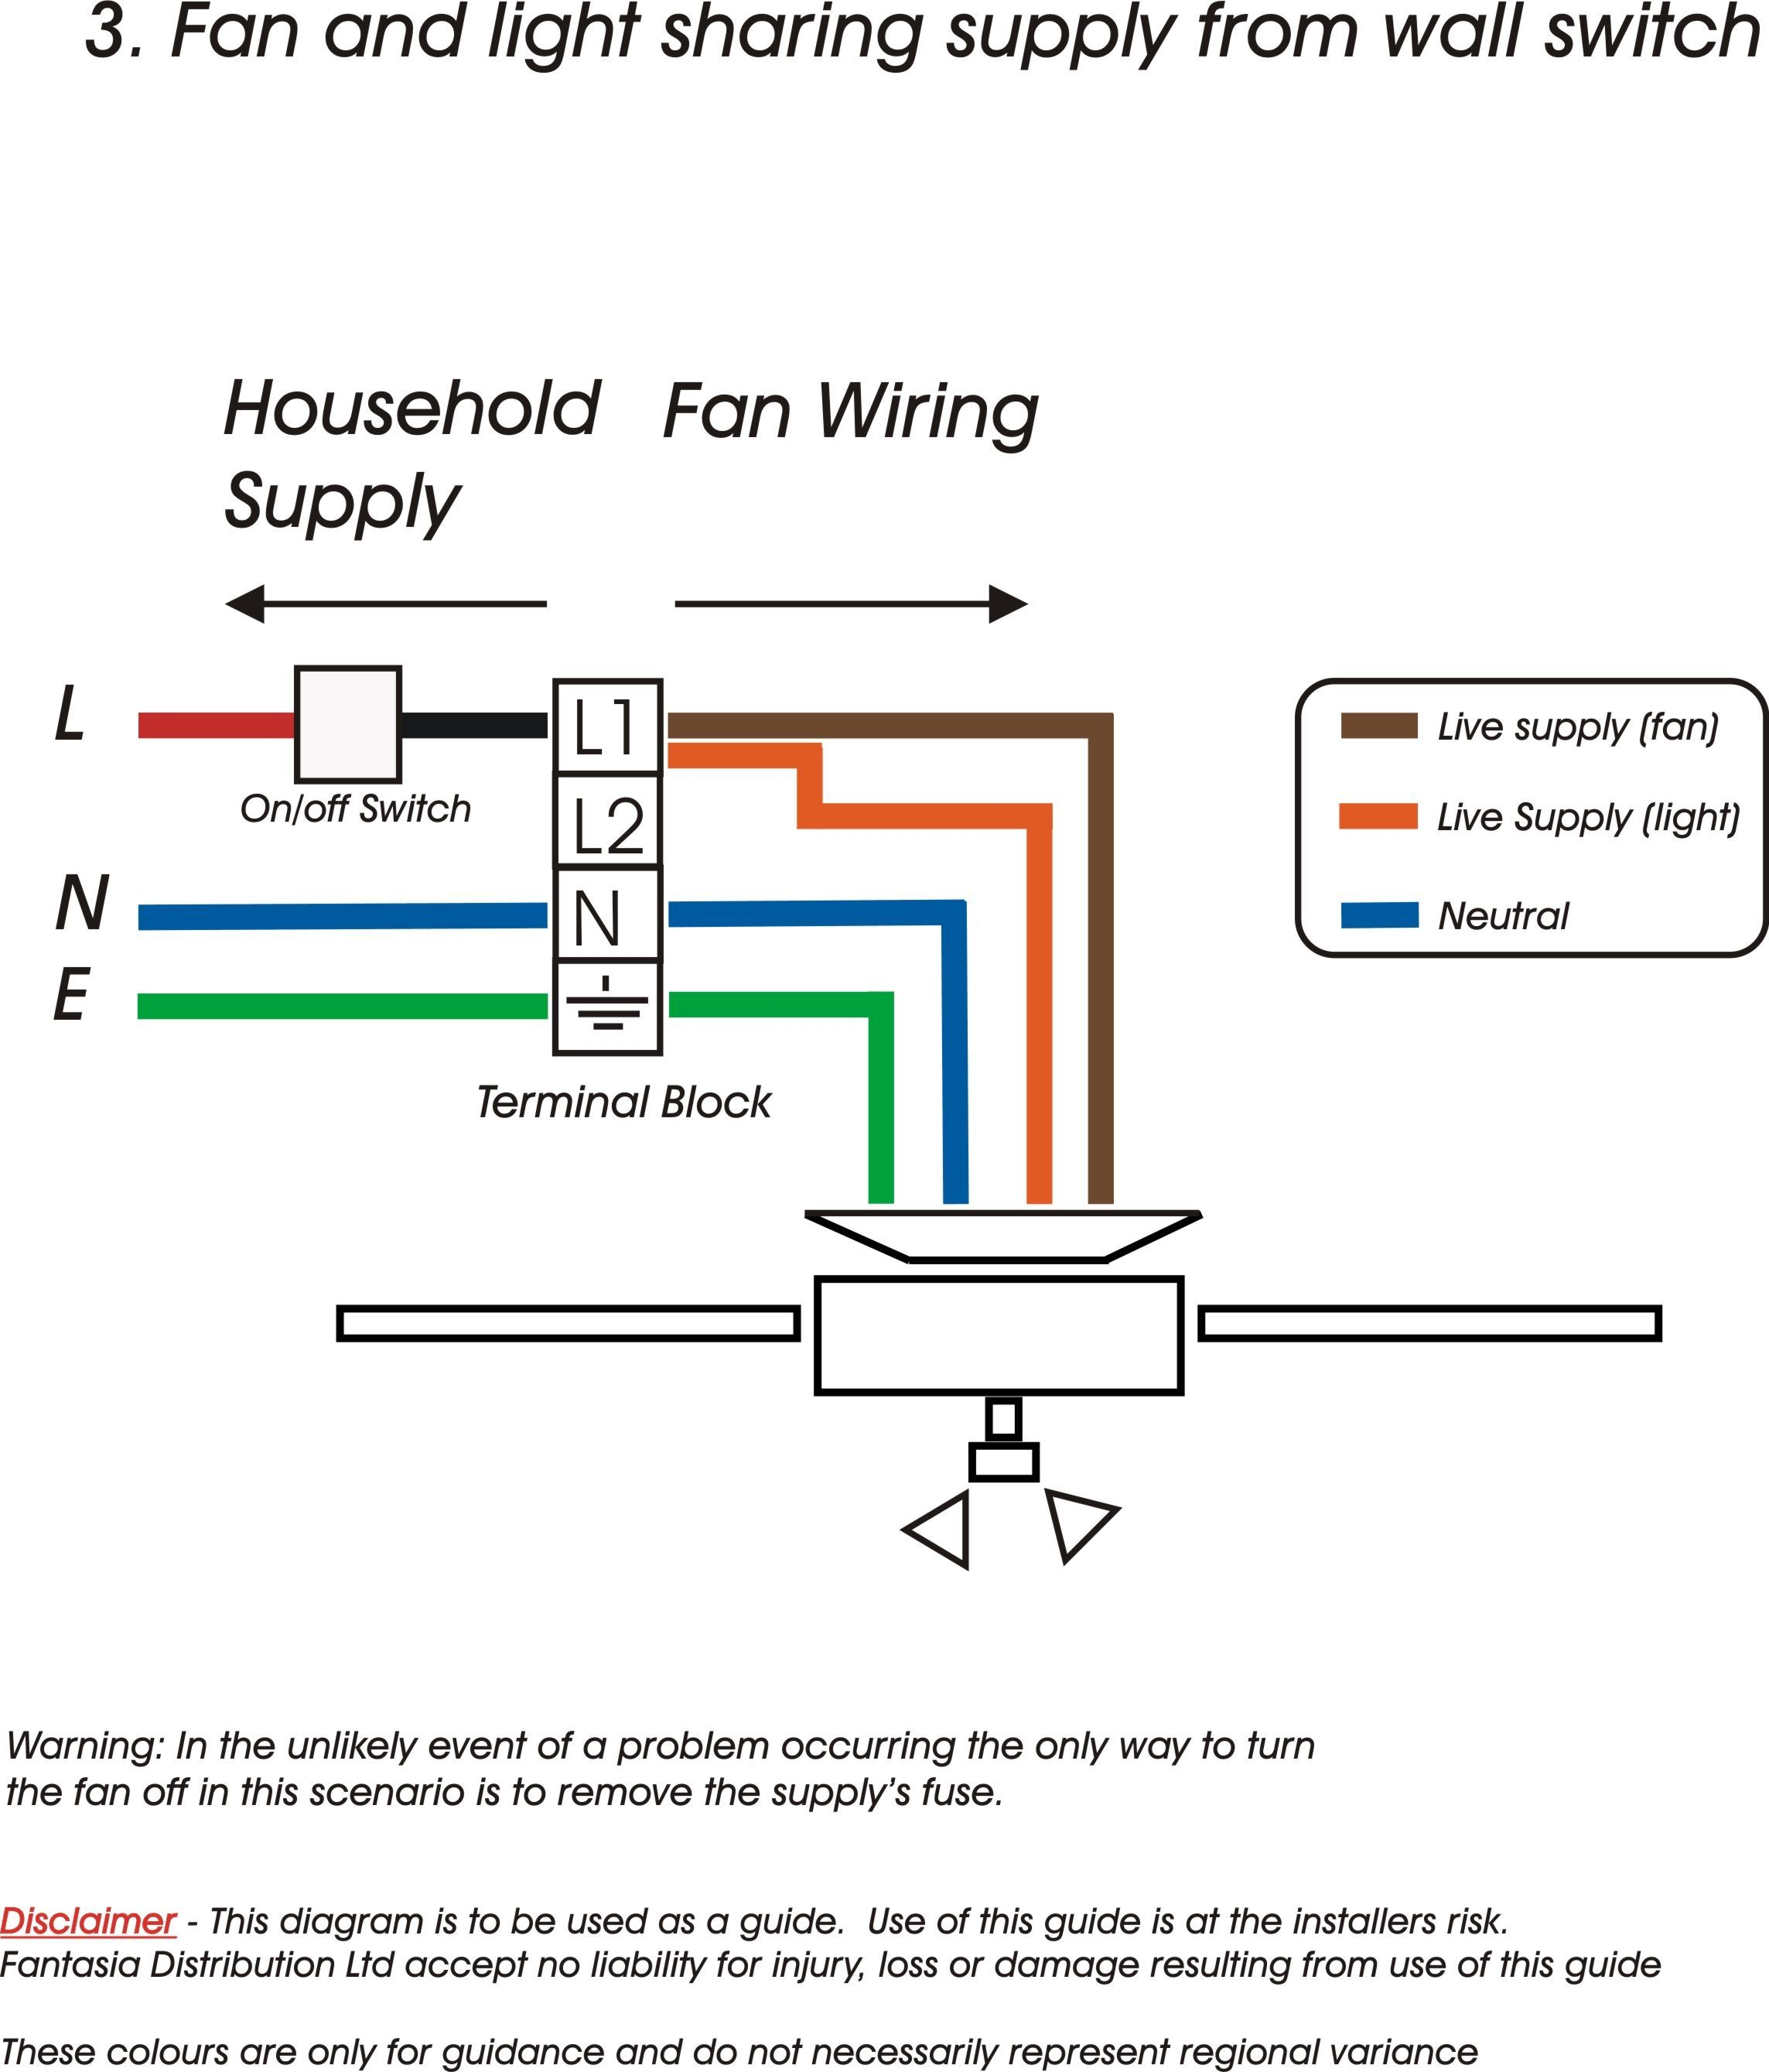 a6e72fabacaaa74231f750a53a3d3cb0 ceiling fan wall switch wiring diagram ladysro info quiet cool wiring diagram at mifinder.co